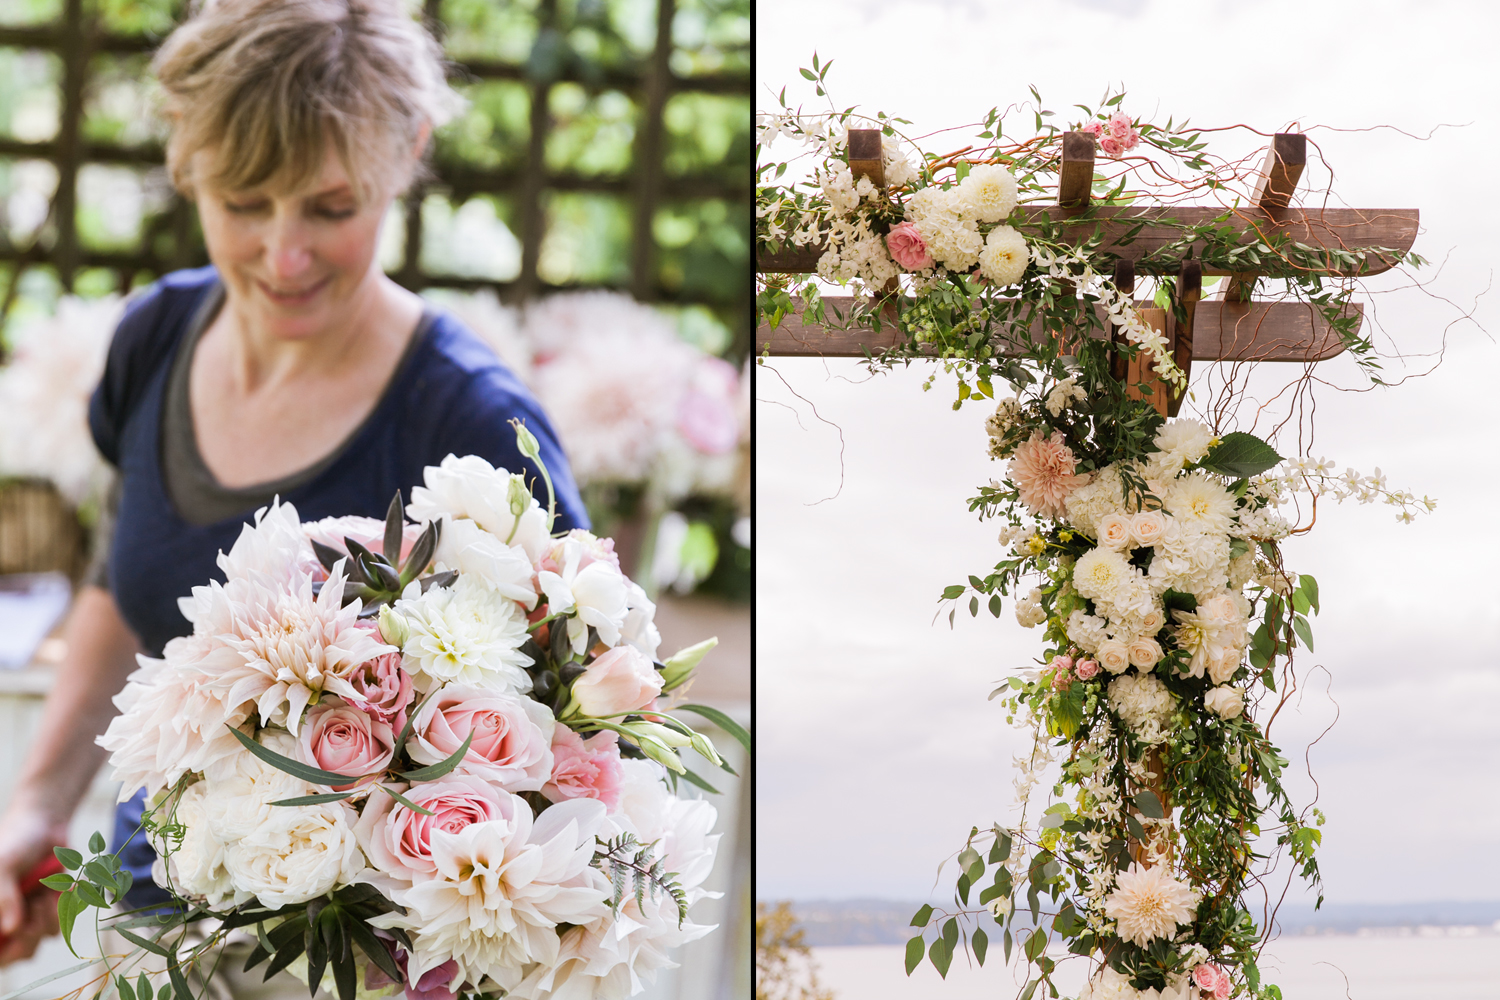 image of Garden Party Flowers florist TJ Montague based on Bainbridge Island design of wedding bride bouquet and ceremony arch